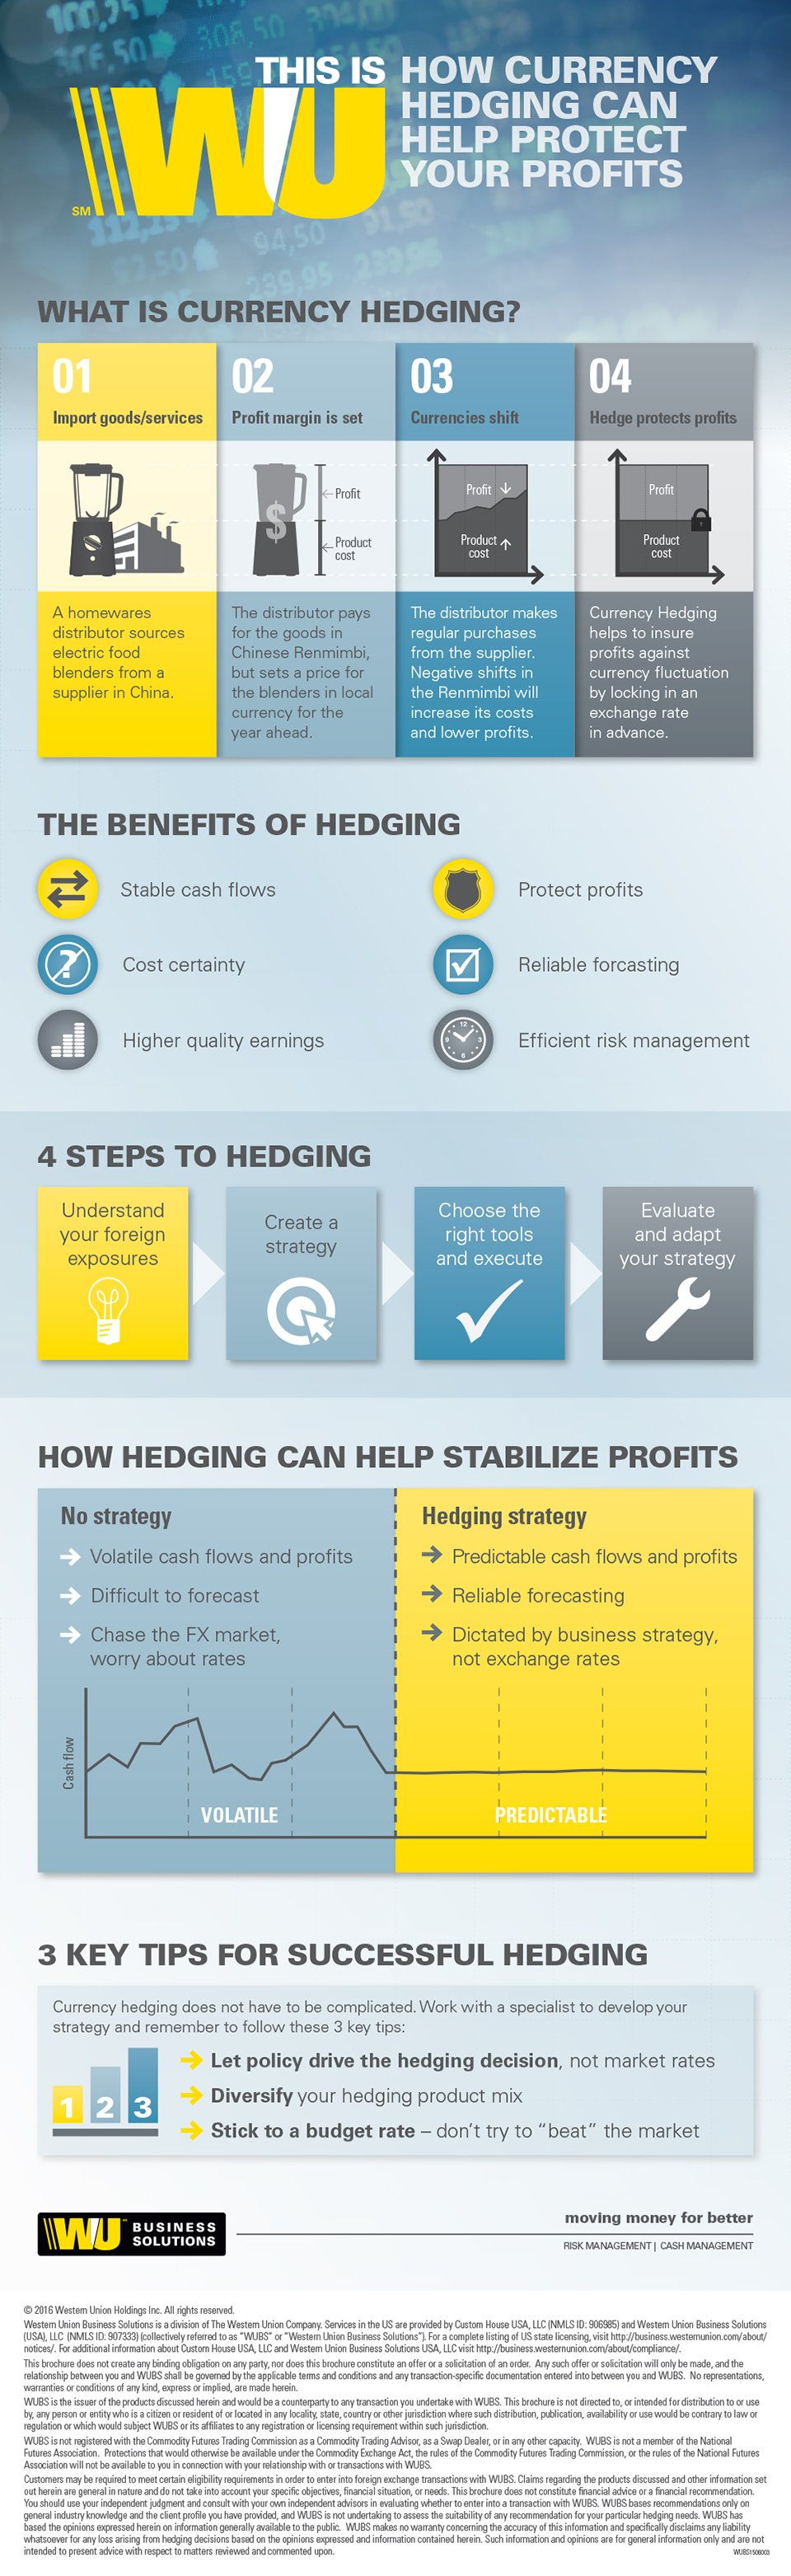 Protect Your Profits From Volatile Currencies